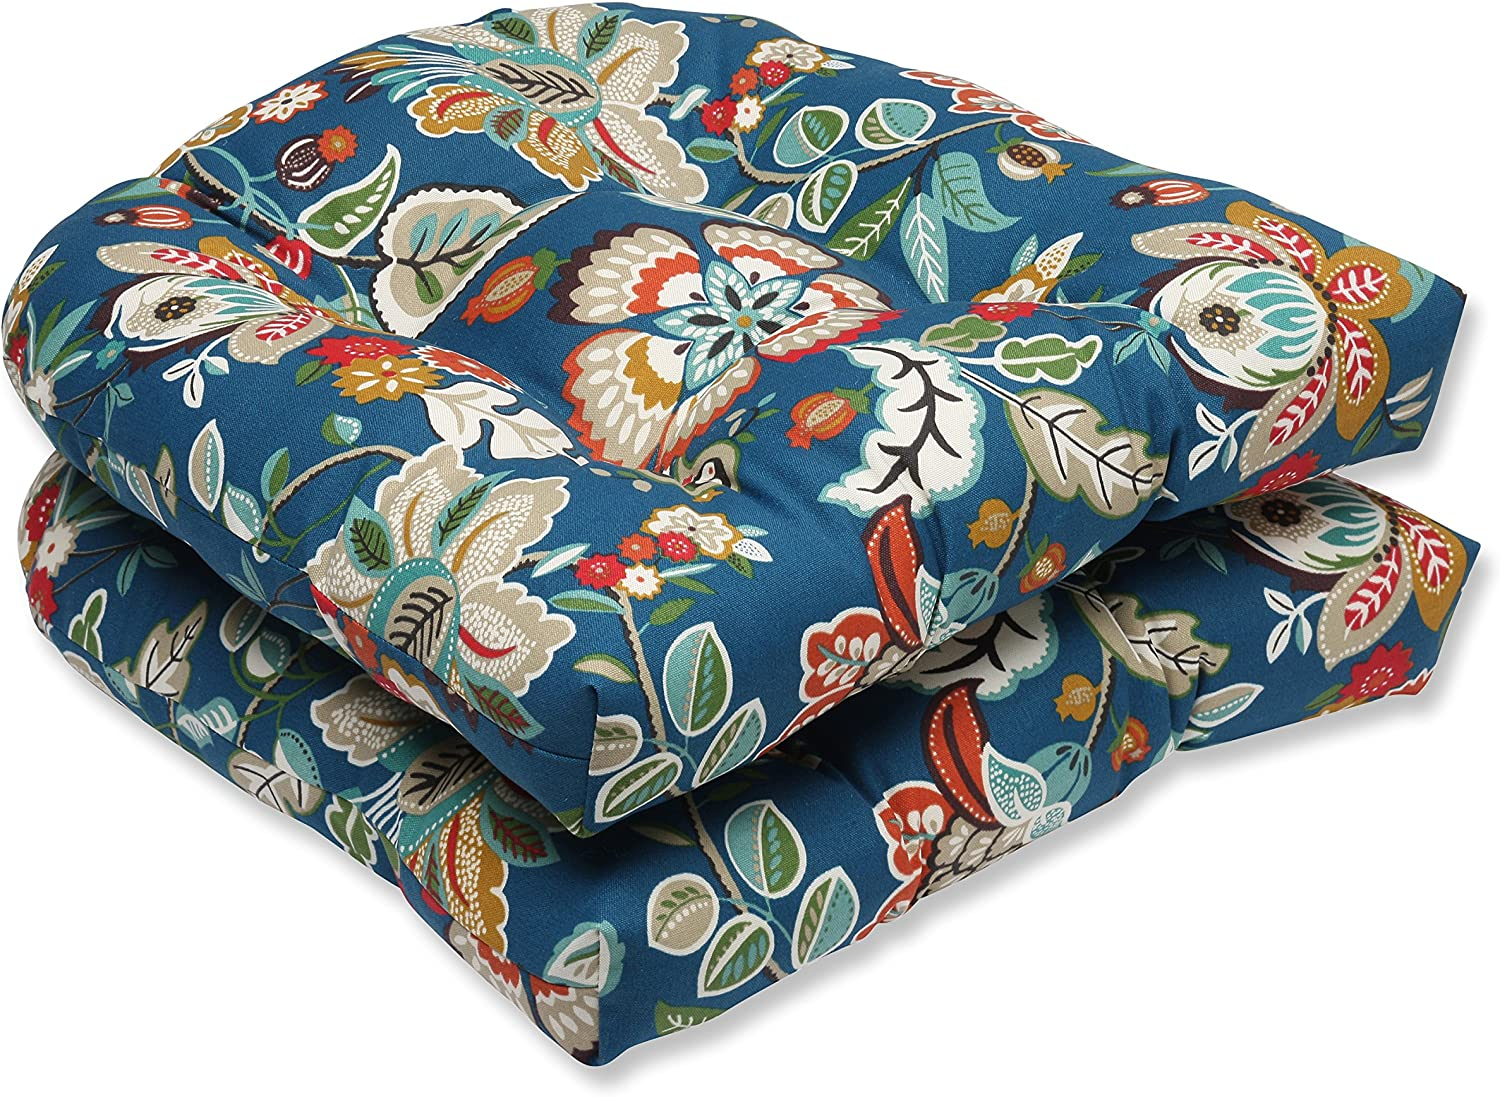 Pillow Perfect Outdoor Telfair Wicker Seat Cushion, Peacock, Set of 2